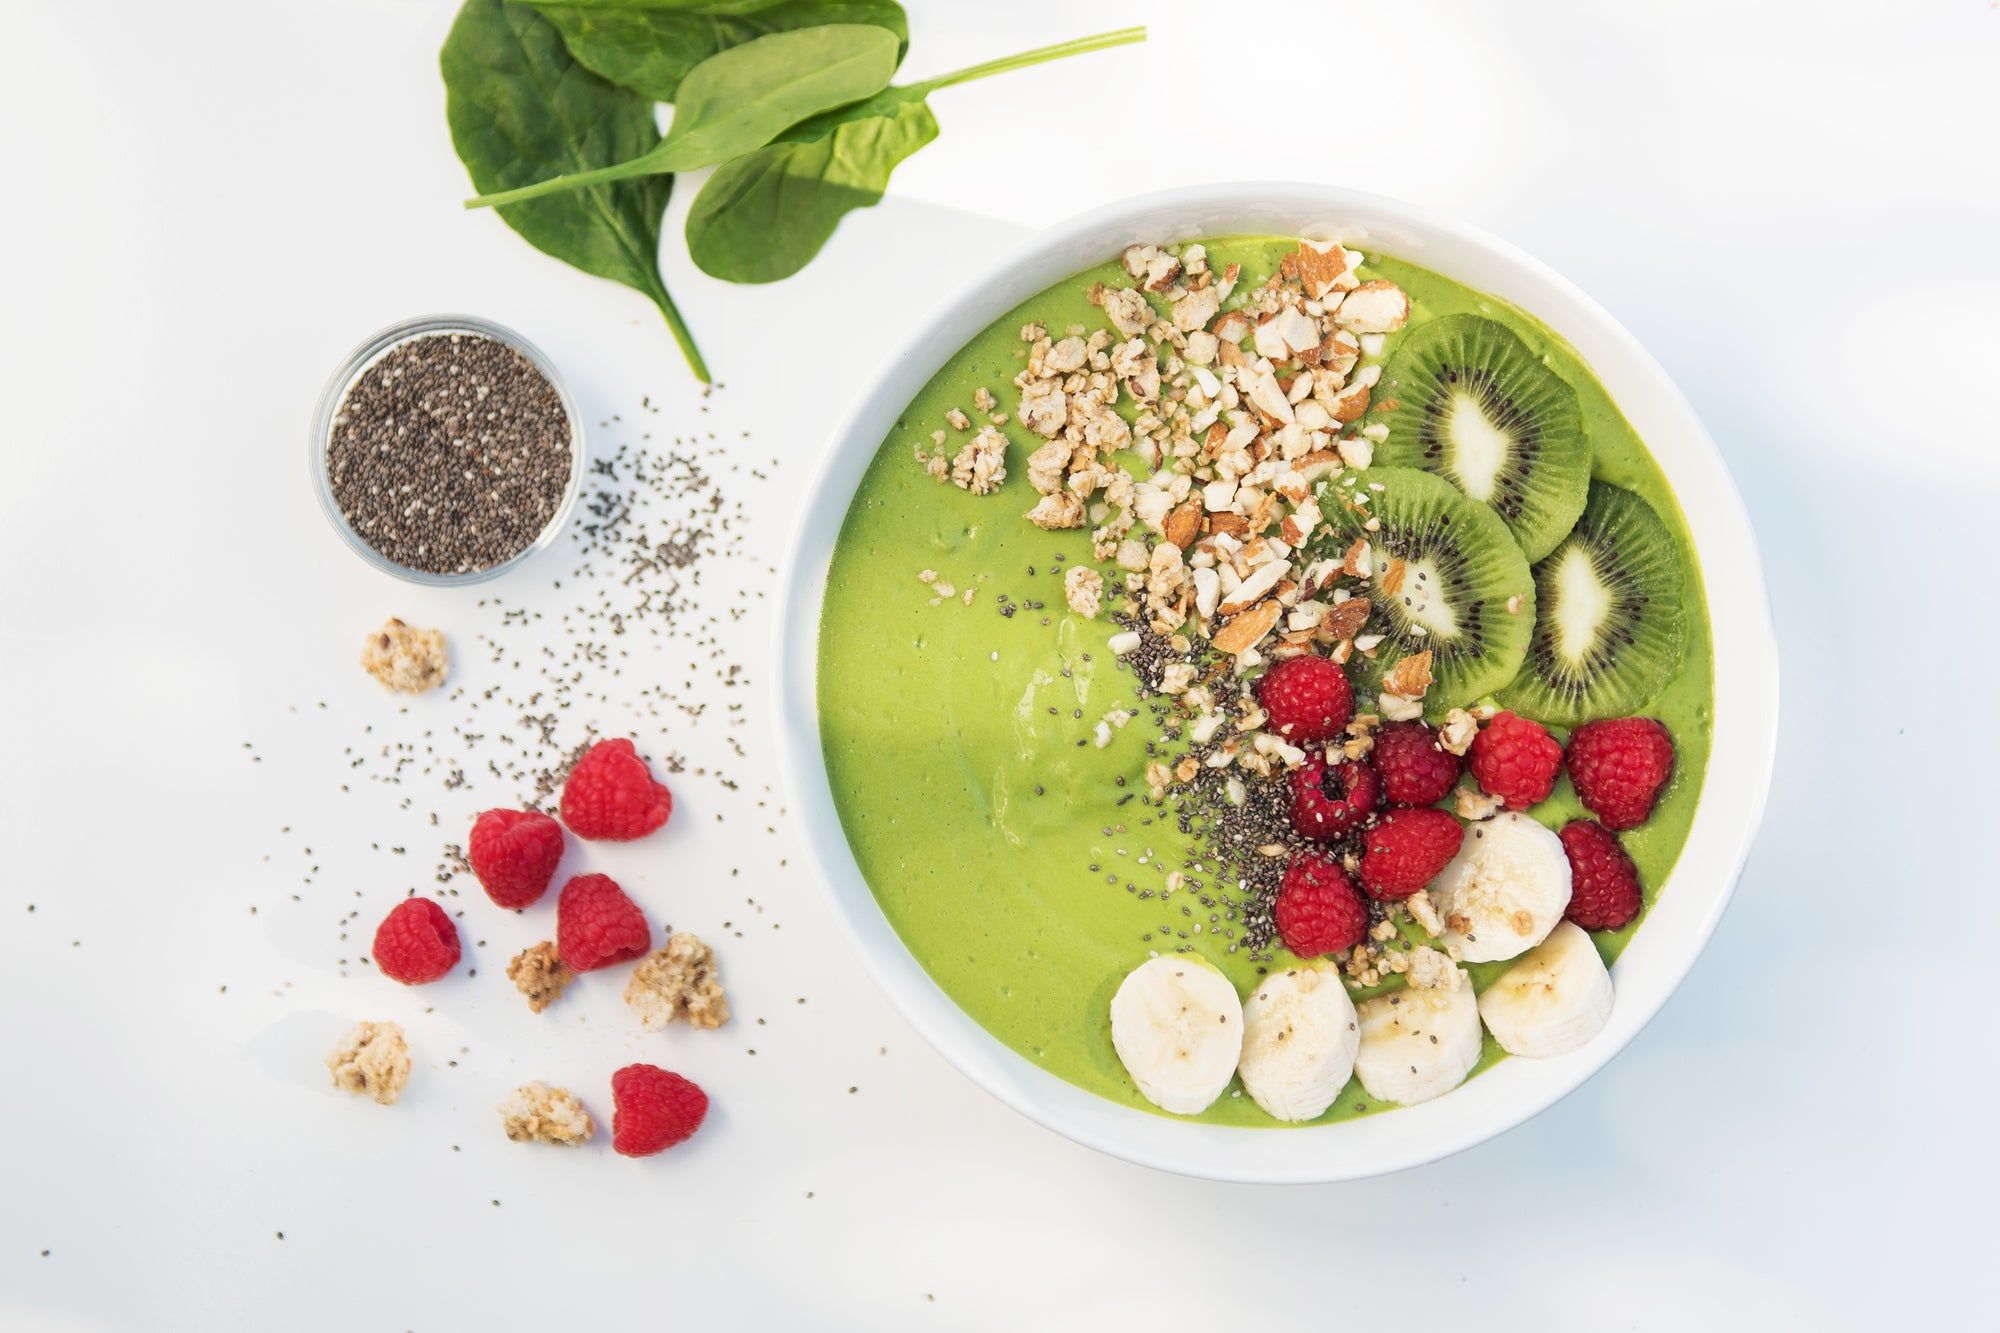 Mother Earth's Green Smoothie Bowl